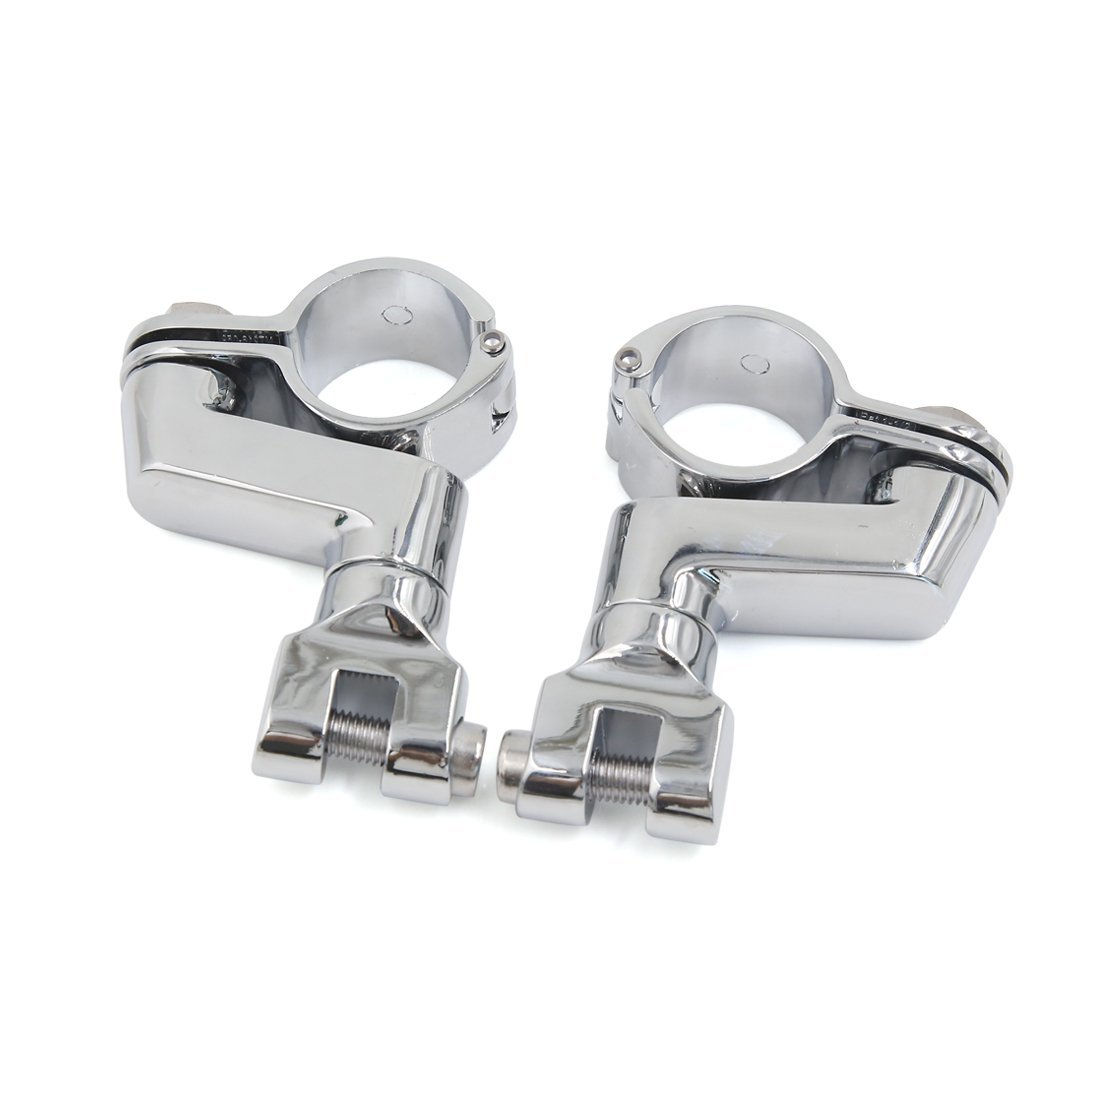 uxcell 1.25 1 1//4 Aluminum Highway Offset P Clamp Footpegs Mount Kit for Harley Davidson Engine Guard Bar